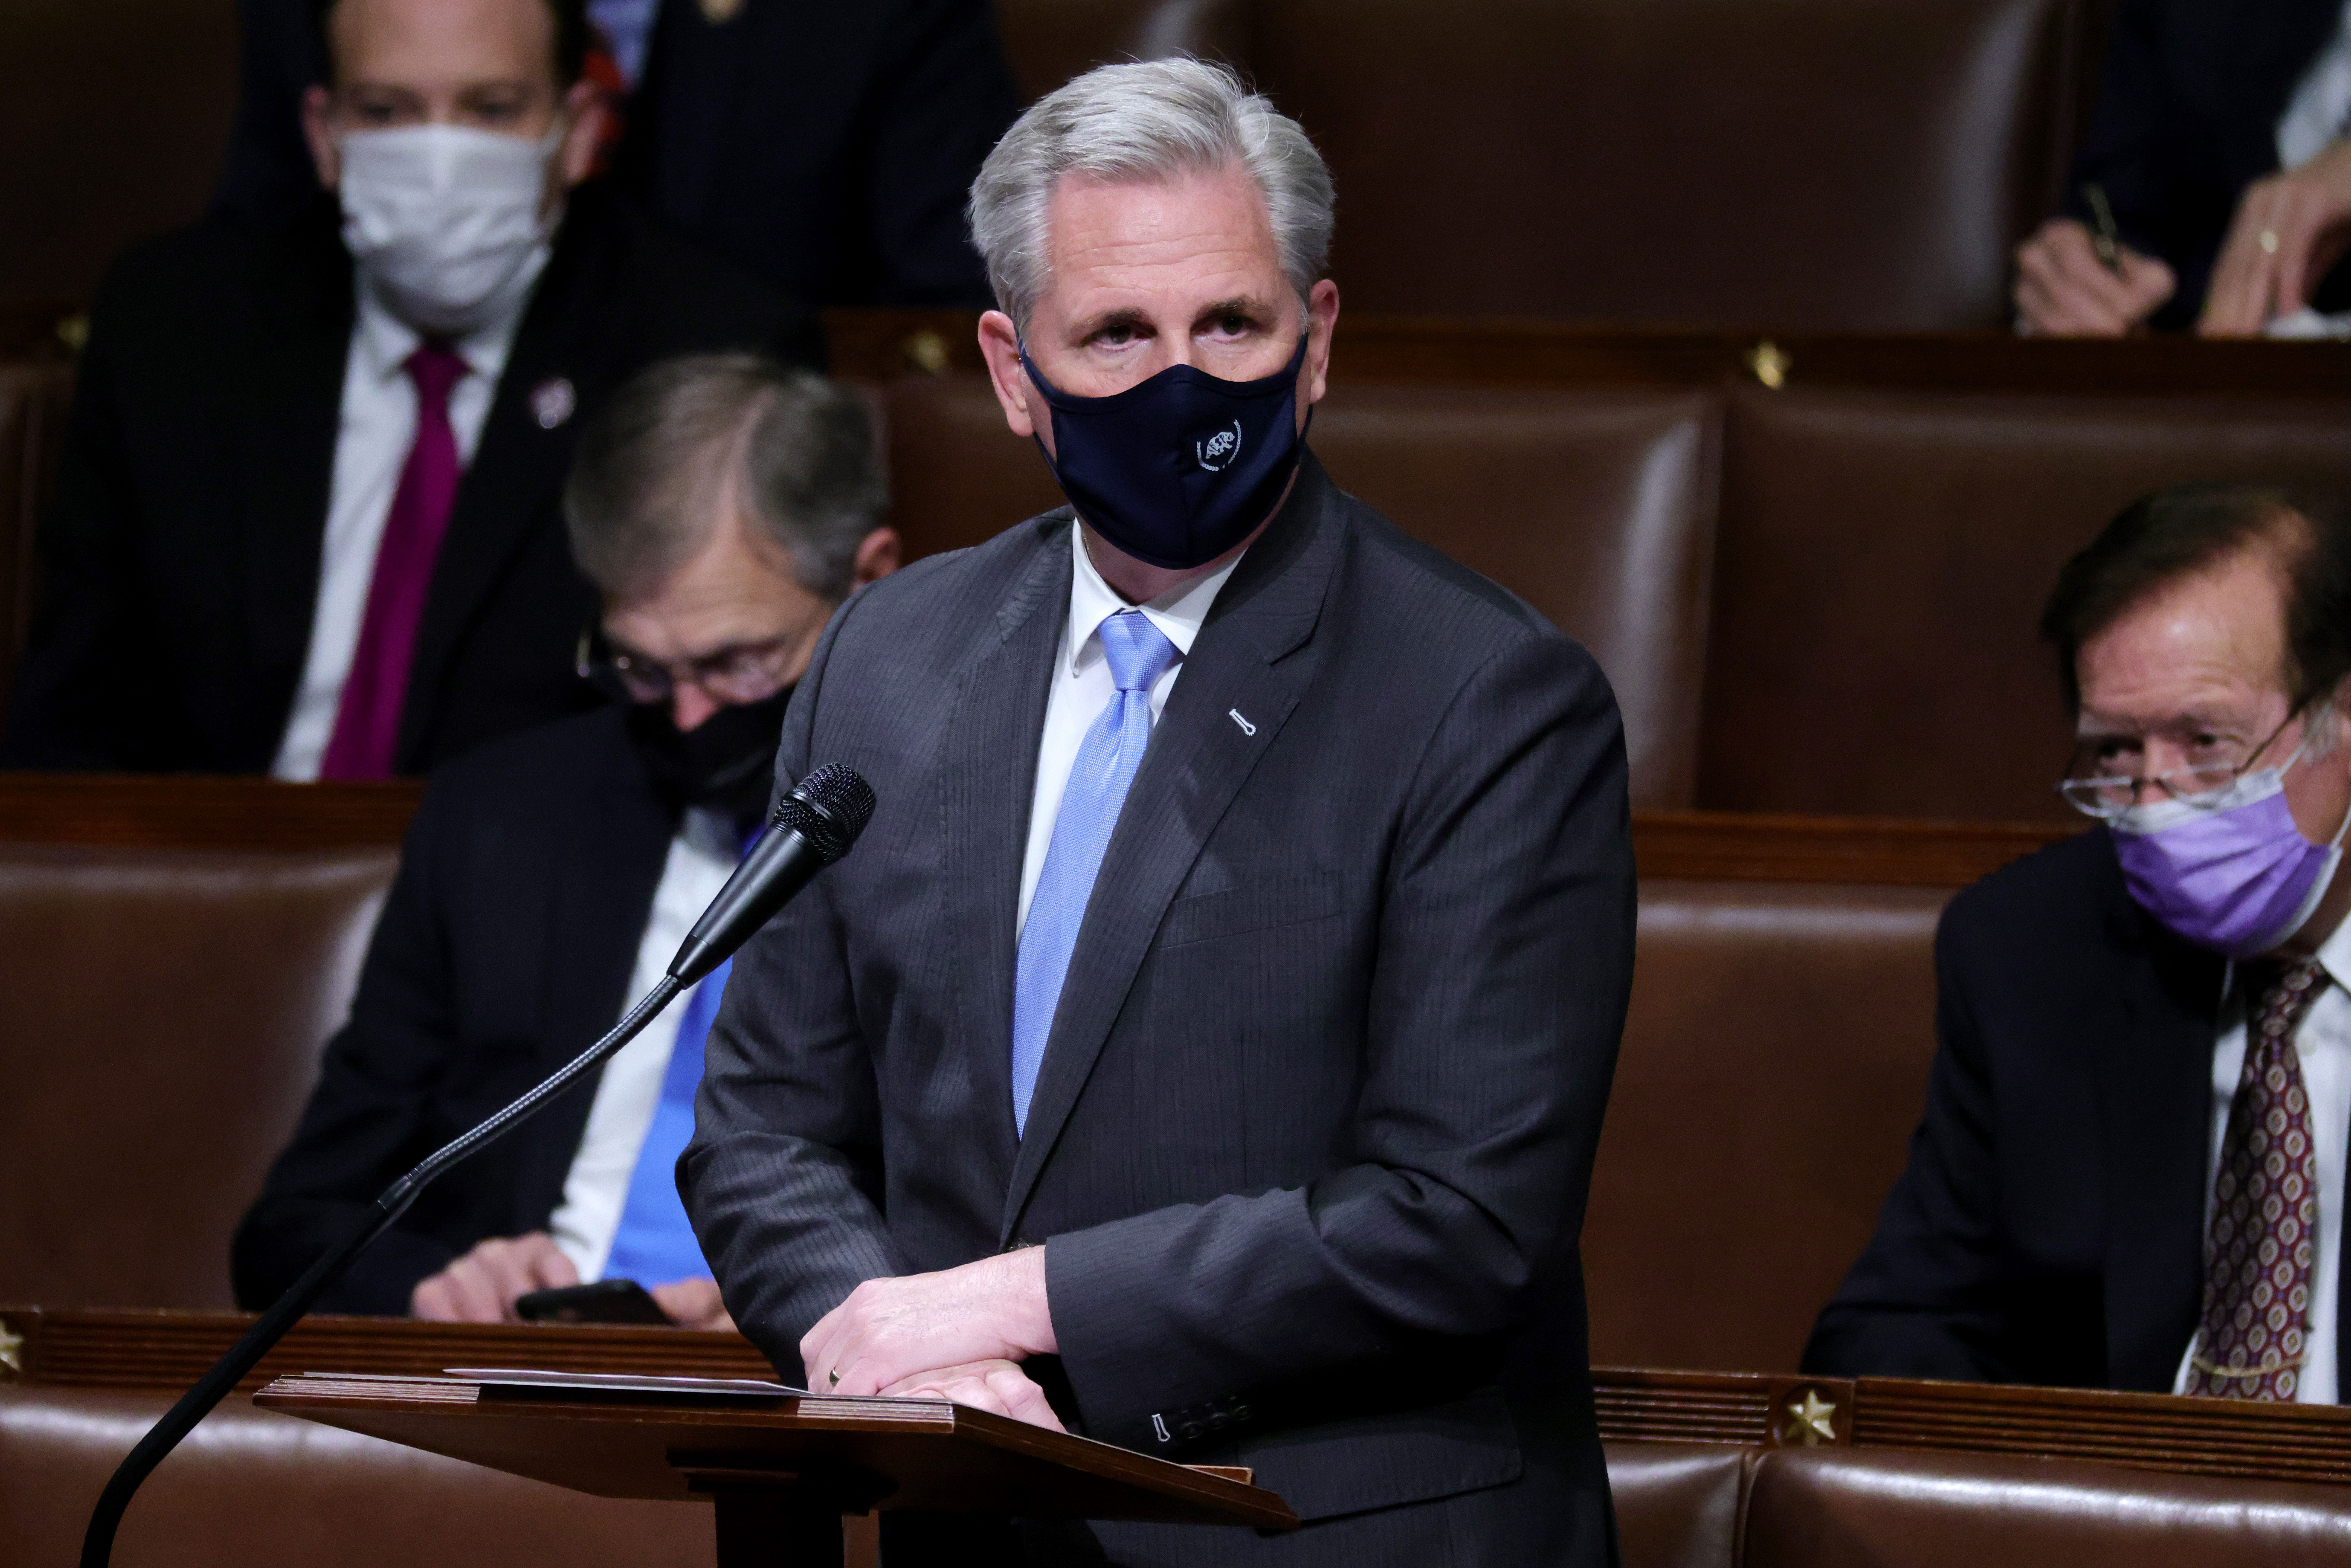 House Republican leader Kevin McCarthy speaks in the House Chamber on January 6.